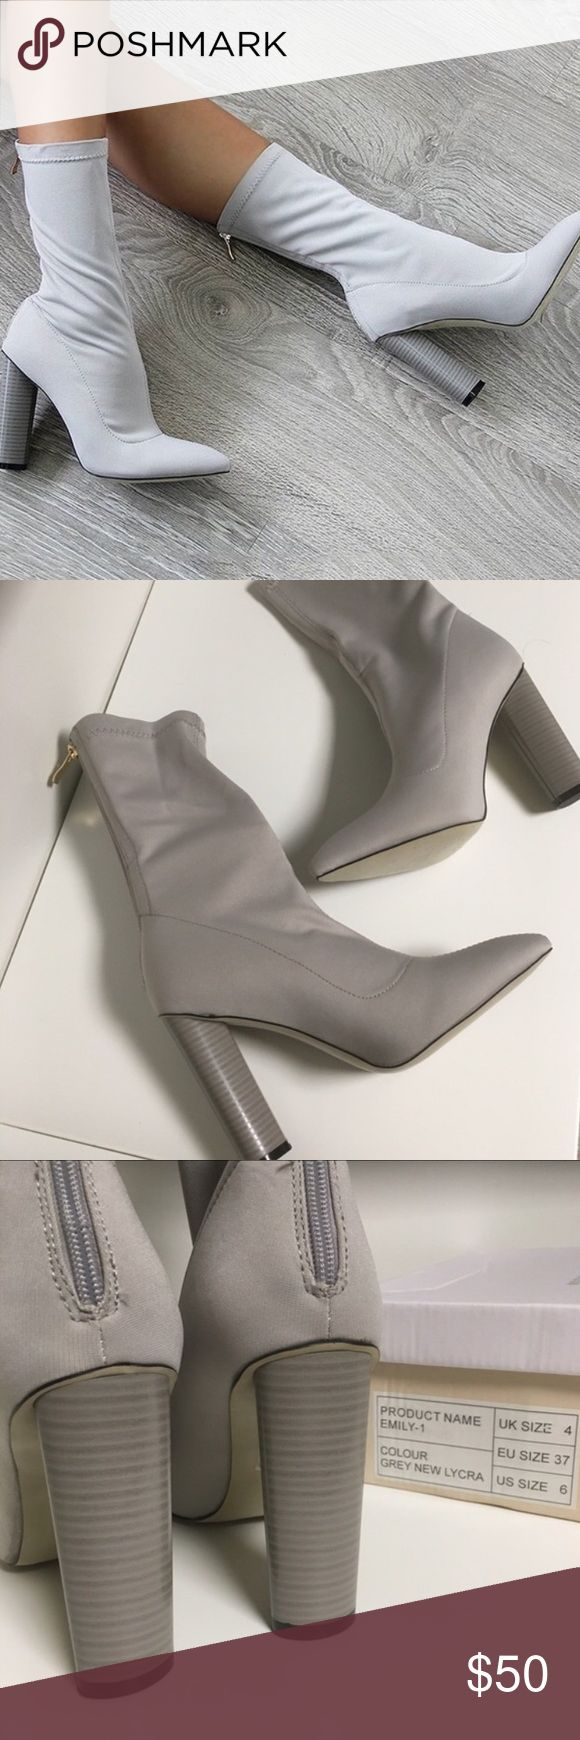 Yeezy Sock Ankle Boots 37 6 grey Heels shoes new Yeezy Sock Ankle Boots Grey / Gray ❤️ NO UNREASONABLE OFFERS YOU WILL BE BLOCKED THANK YOU ❤️  Seen on Kim Kardashian / Kylie Jenner / Kendal / Khloe / Kayne West Yeezy Show  Size 37 / 6 labeled on the box ( SIZE 37 EU is actually a size 6.5 US )  Heel measures approximately 4 inches/ 10.16cm   Never worn before new in box Has a tiny stain but not noticeable see the last pic / I received them in the mail like this  Heel is a little high for me…